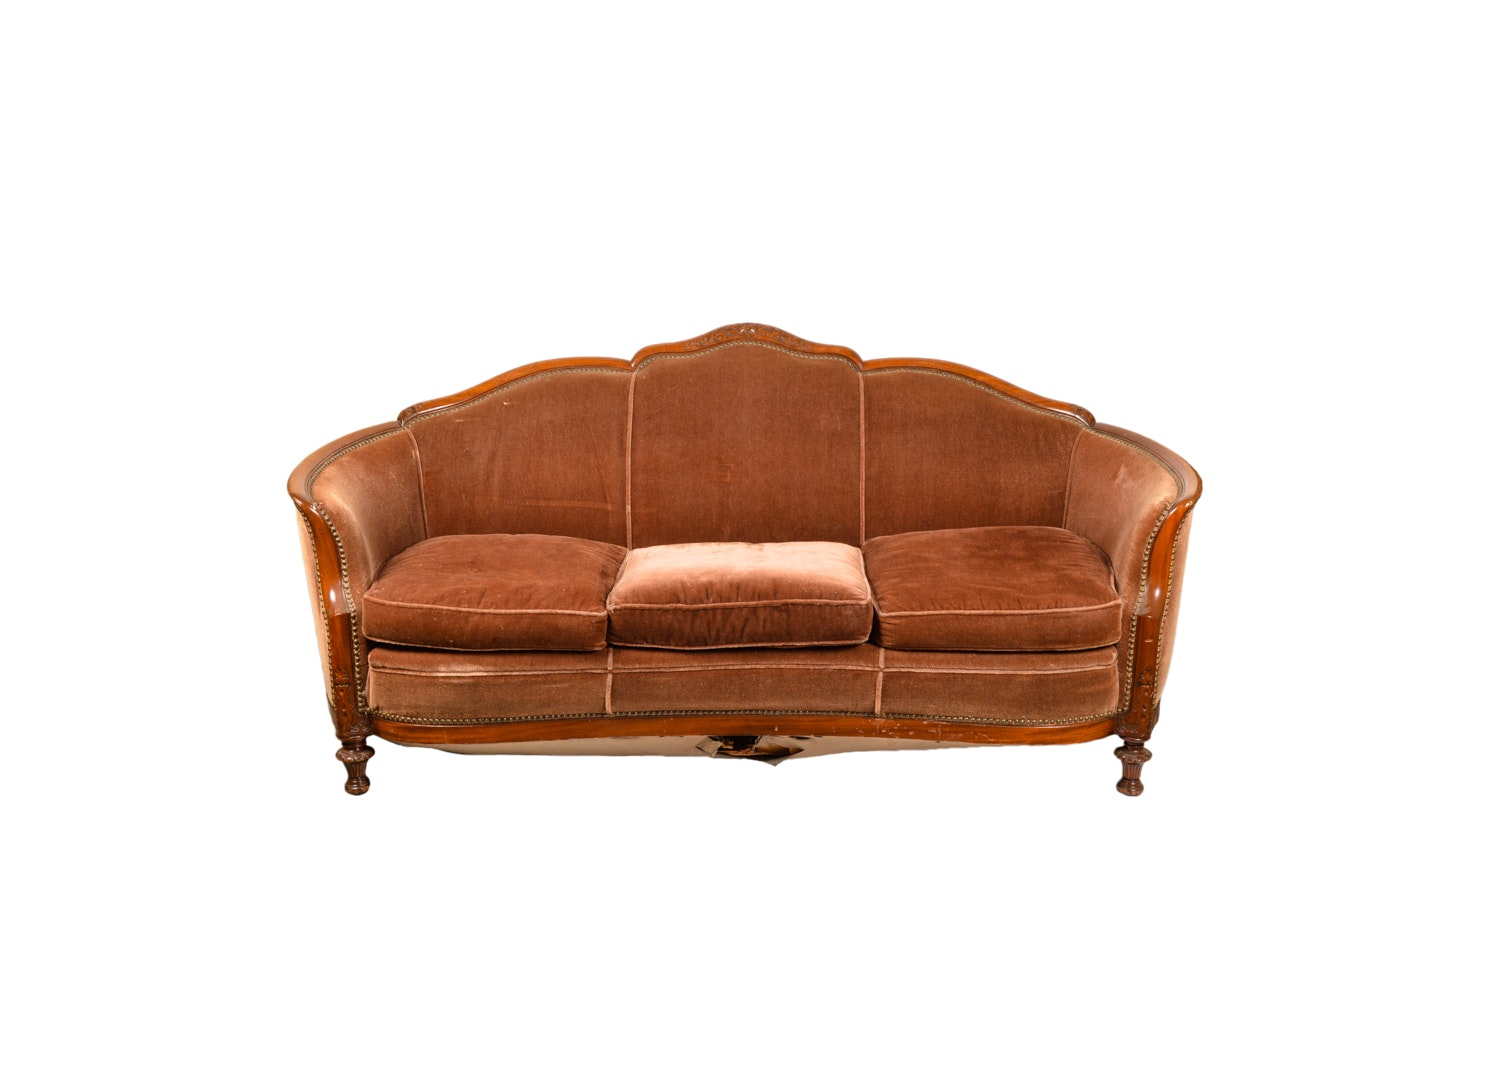 Victorian Style Mohair Upholstered Cabriole Sofa, 20th Century